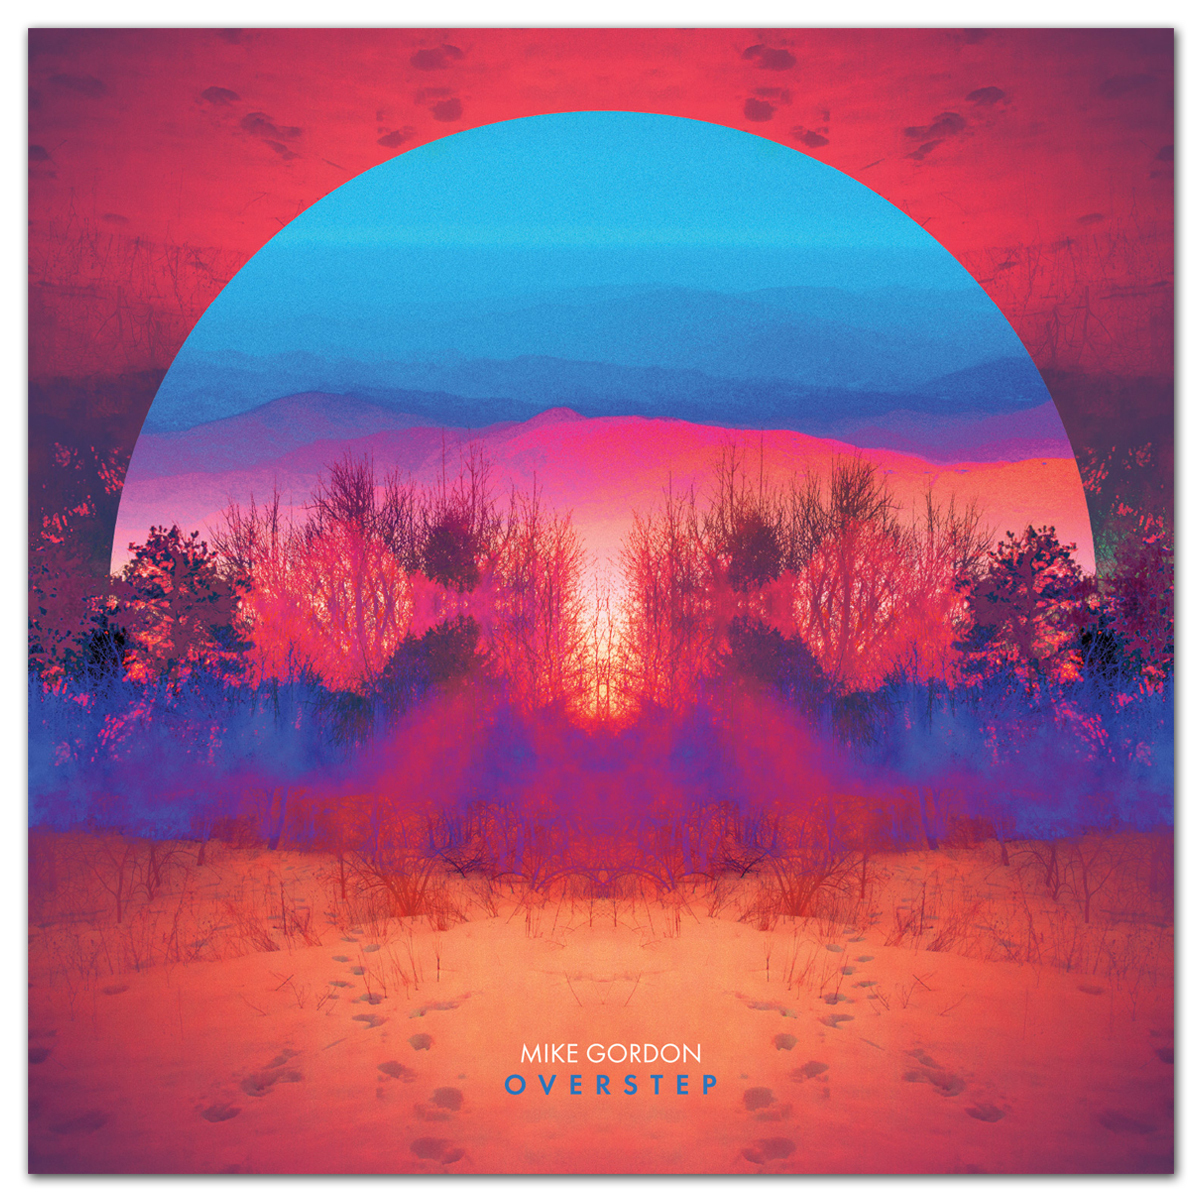 Mike Gordon - Overstep (MP3 - Digital Download)